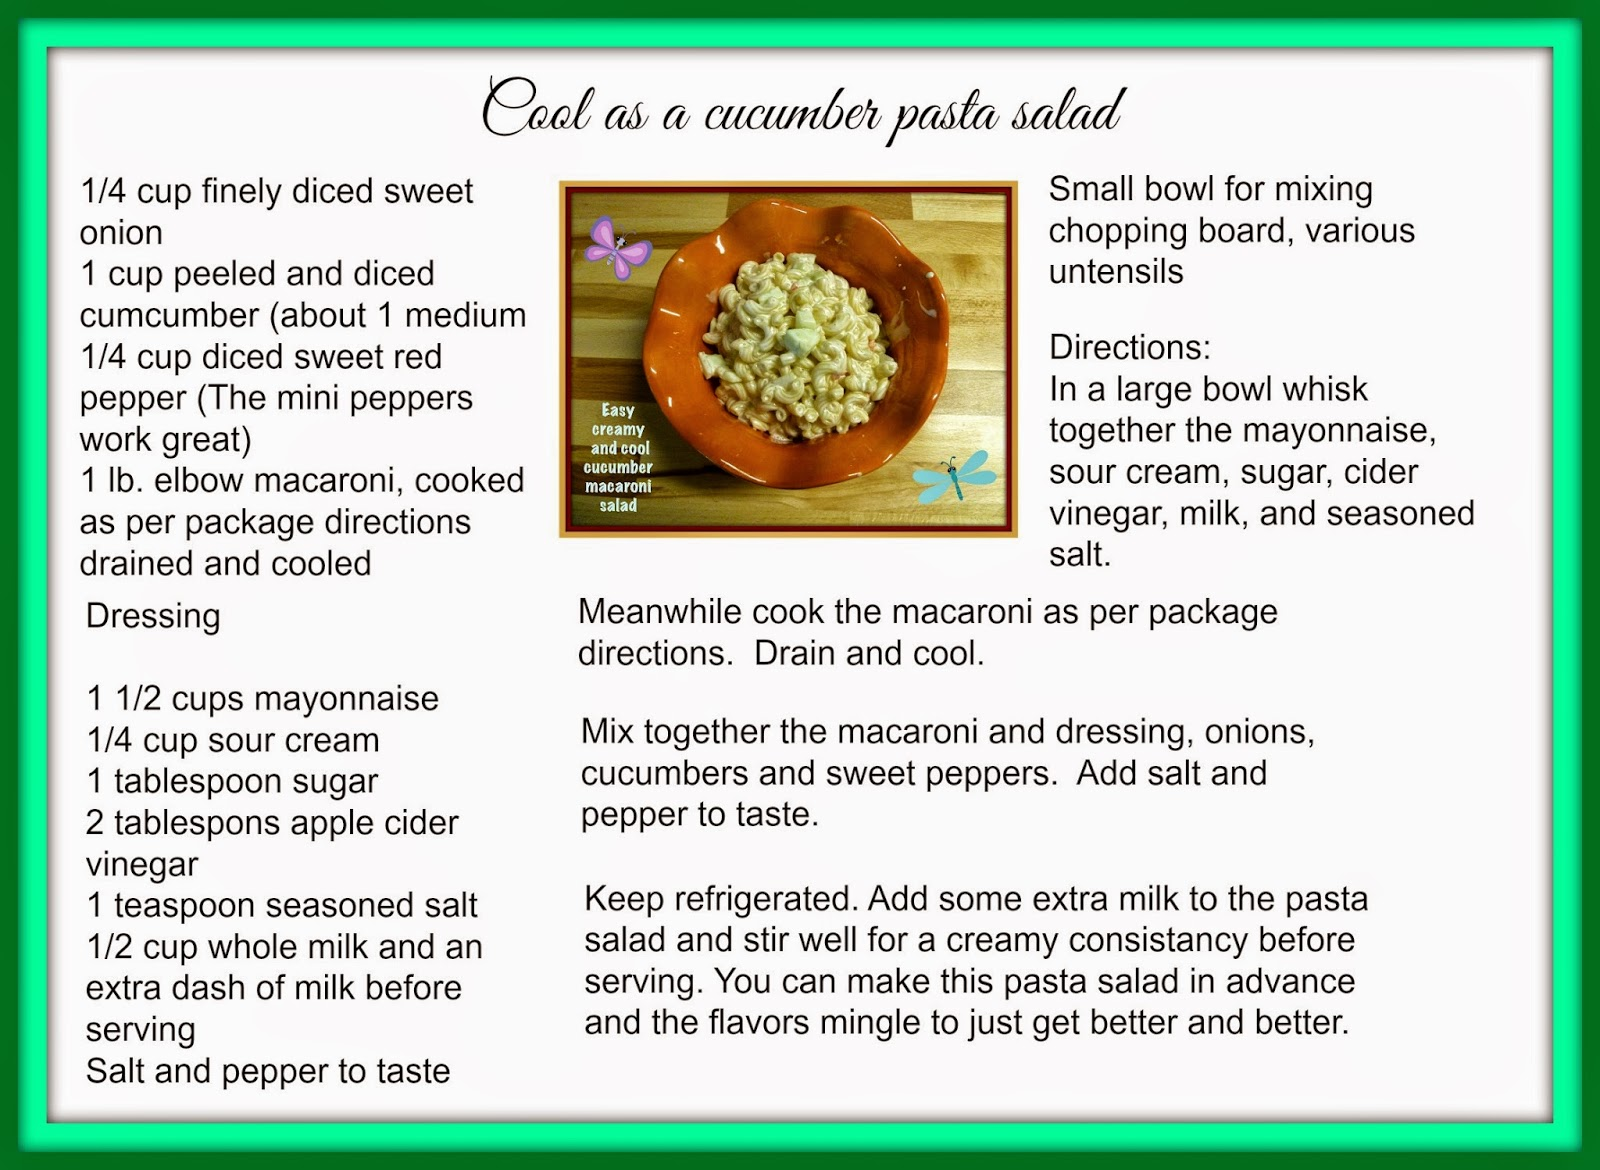 Pasta salad recipe card